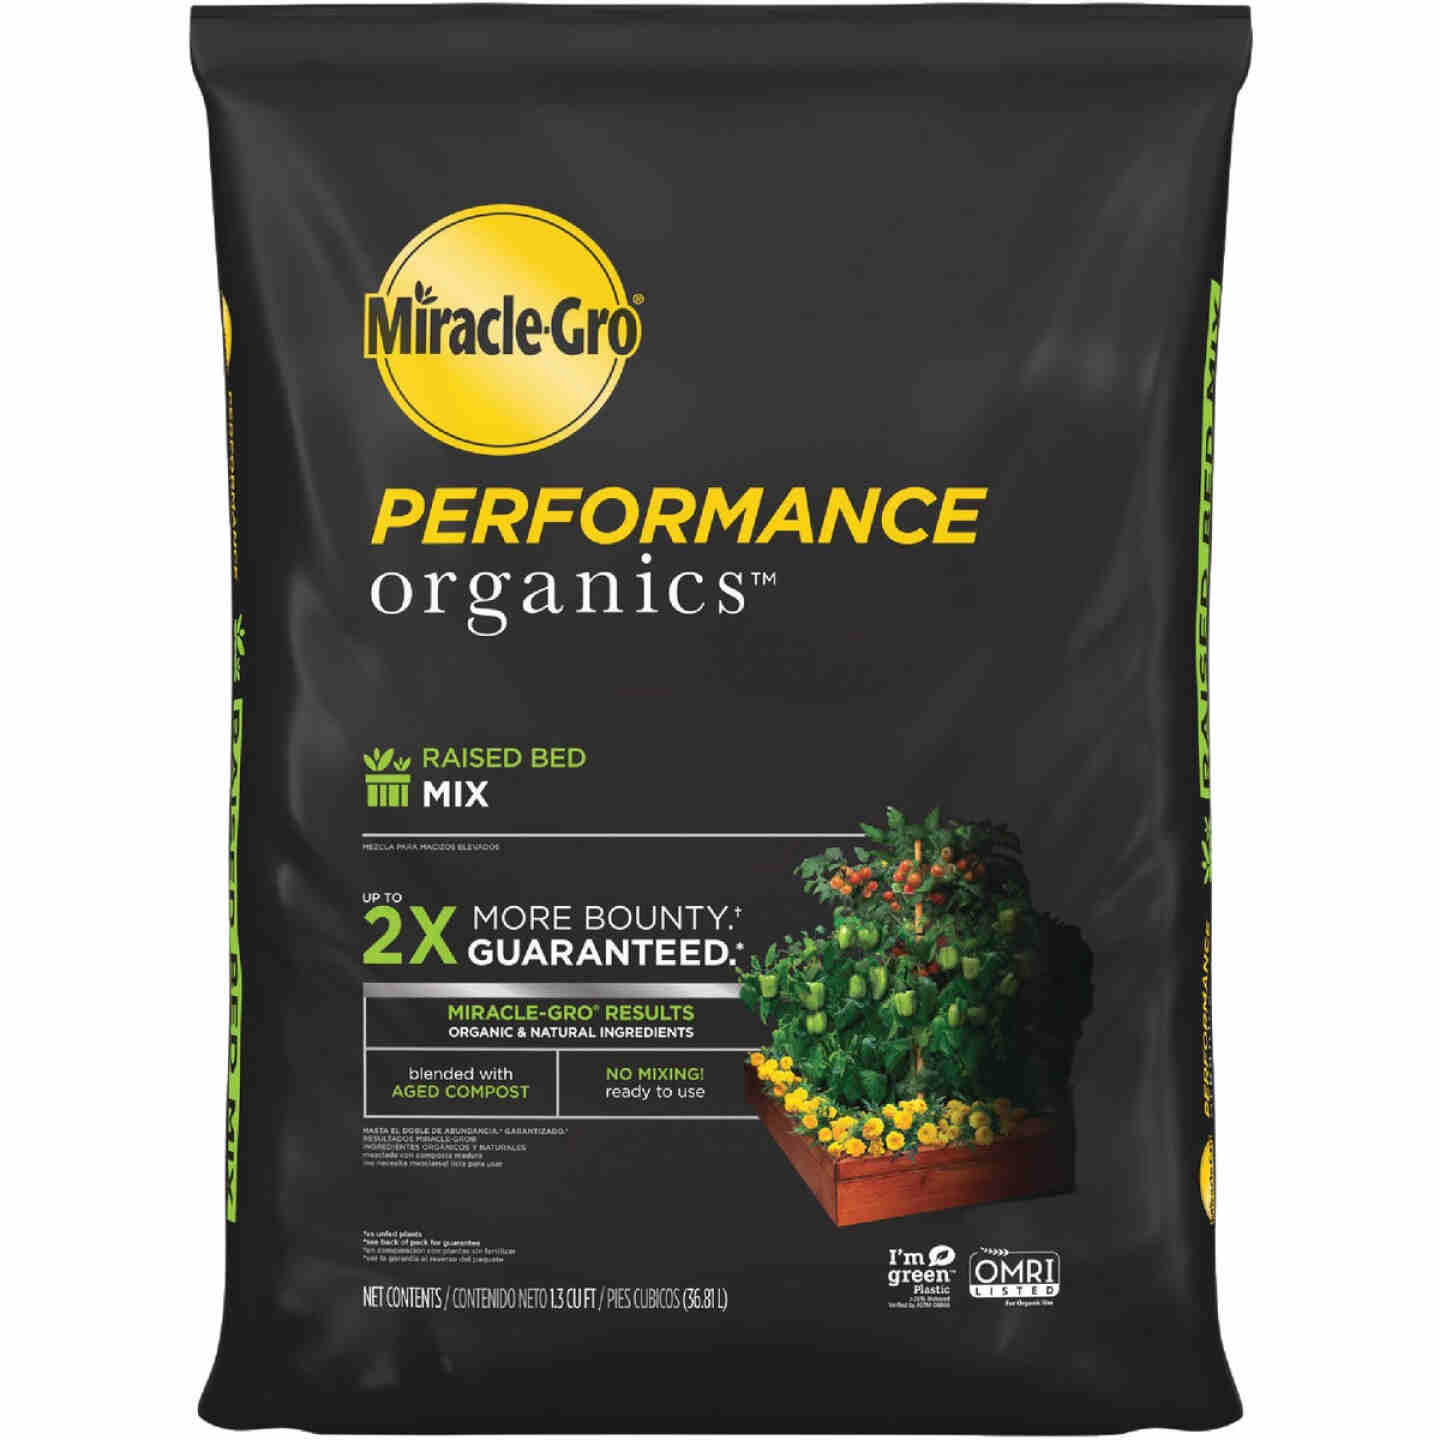 Miracle-Gro Performance Organics 1.3 Cu. Ft. 42 Lb. Raised Bed Vegetables, Fruits, Herbs Garden Soil Image 1